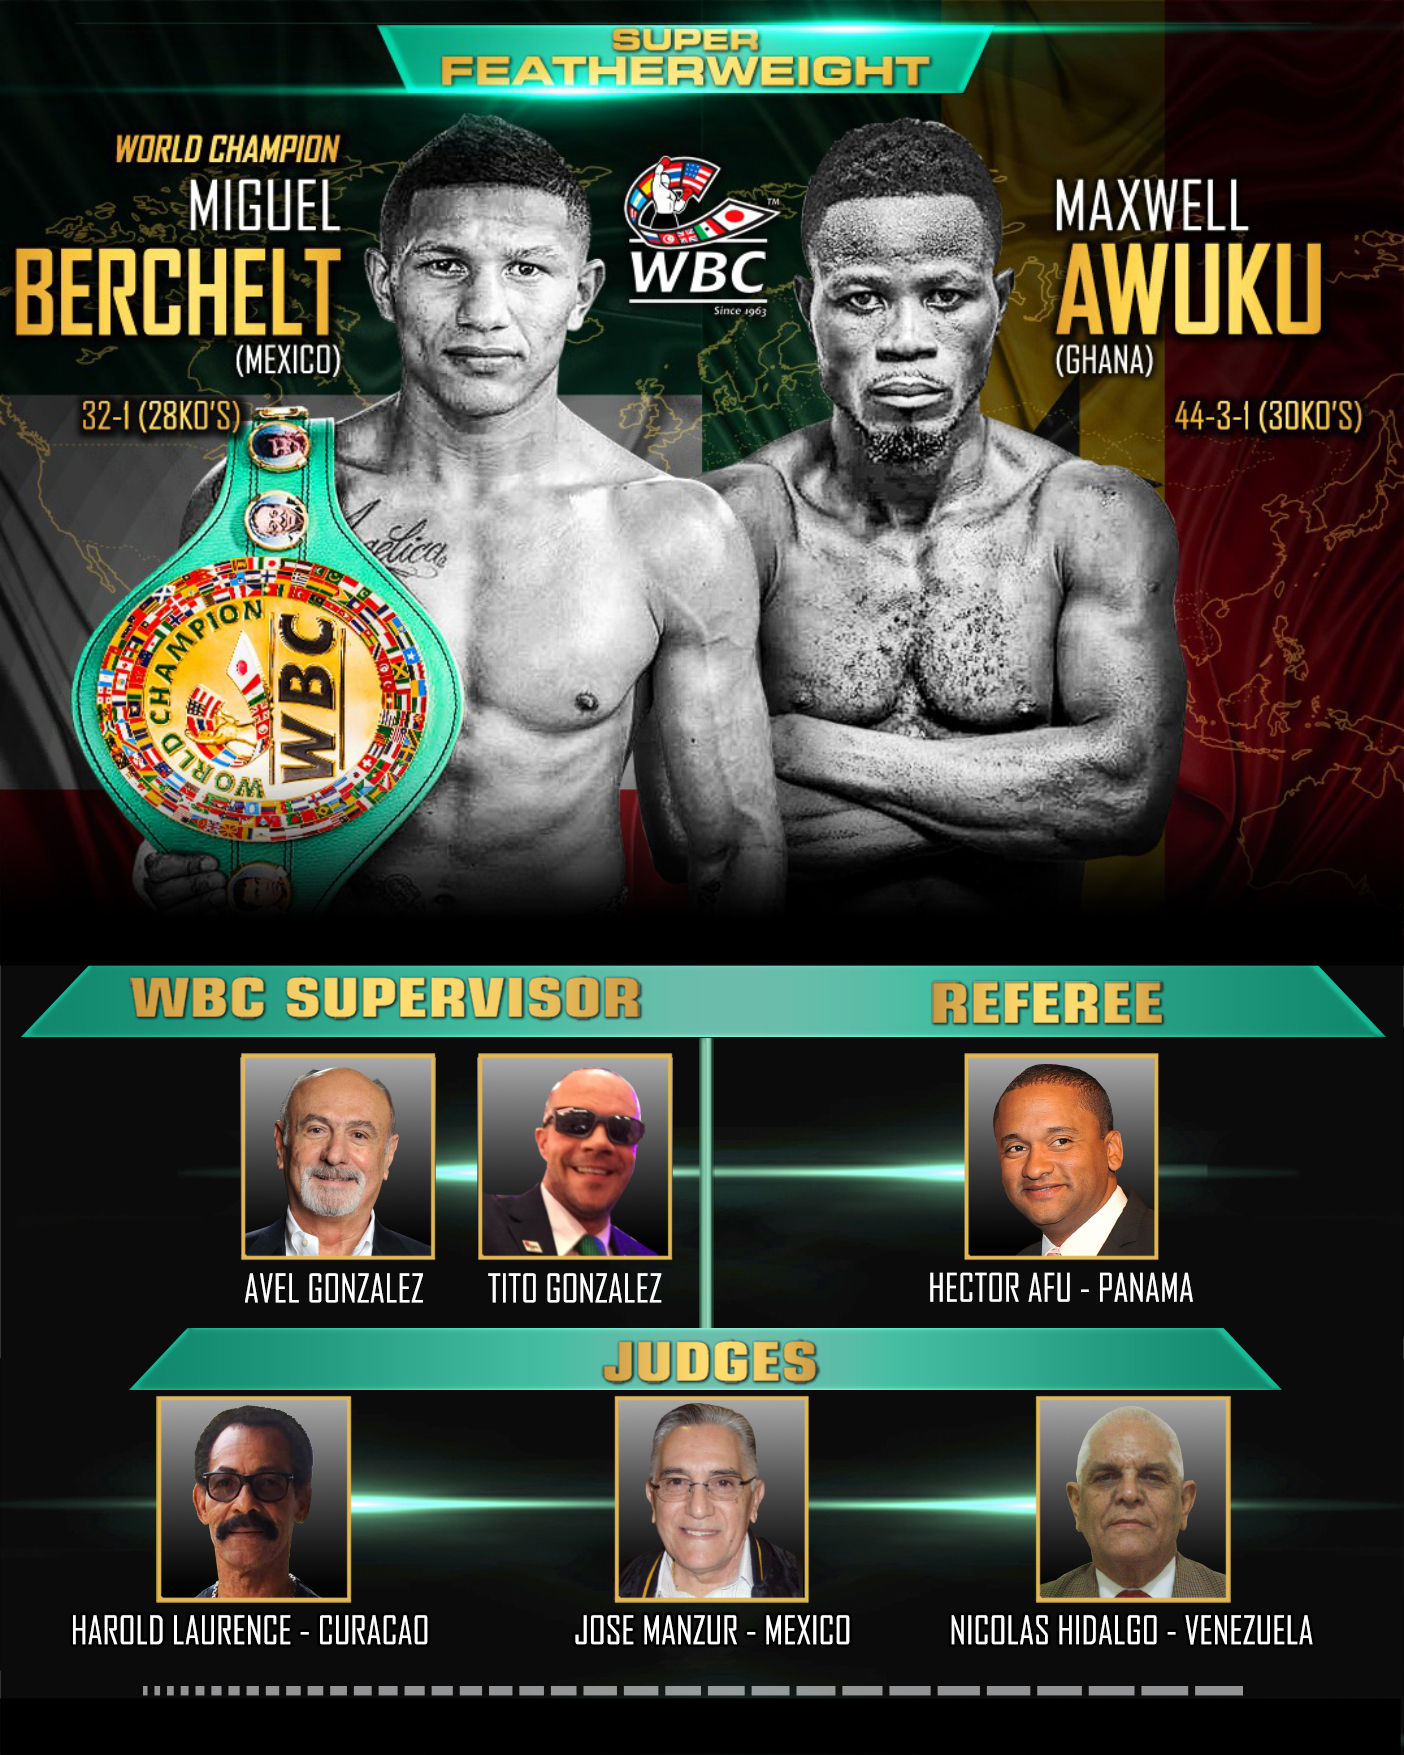 MIGUEL-BERCHELT-VS-MAXWELL-AWUKU-FEB-2018